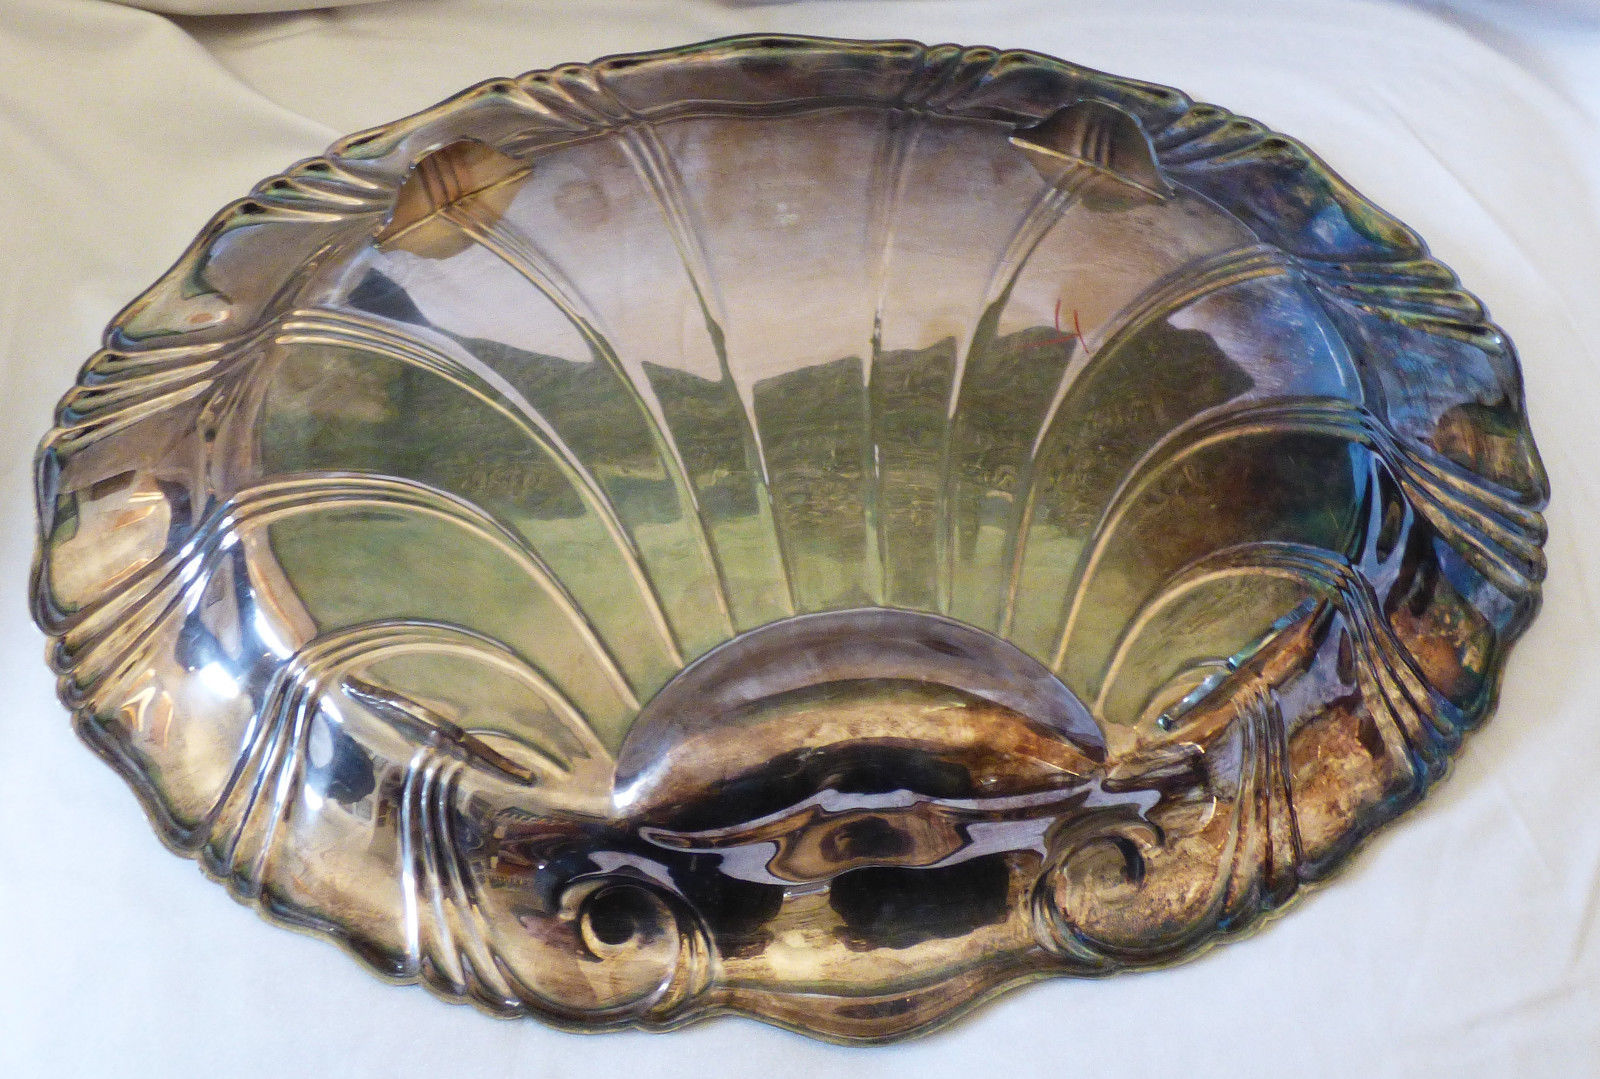 VTG 1847 Rogers Neptune signed Large Silverplate footed serving Tray shell